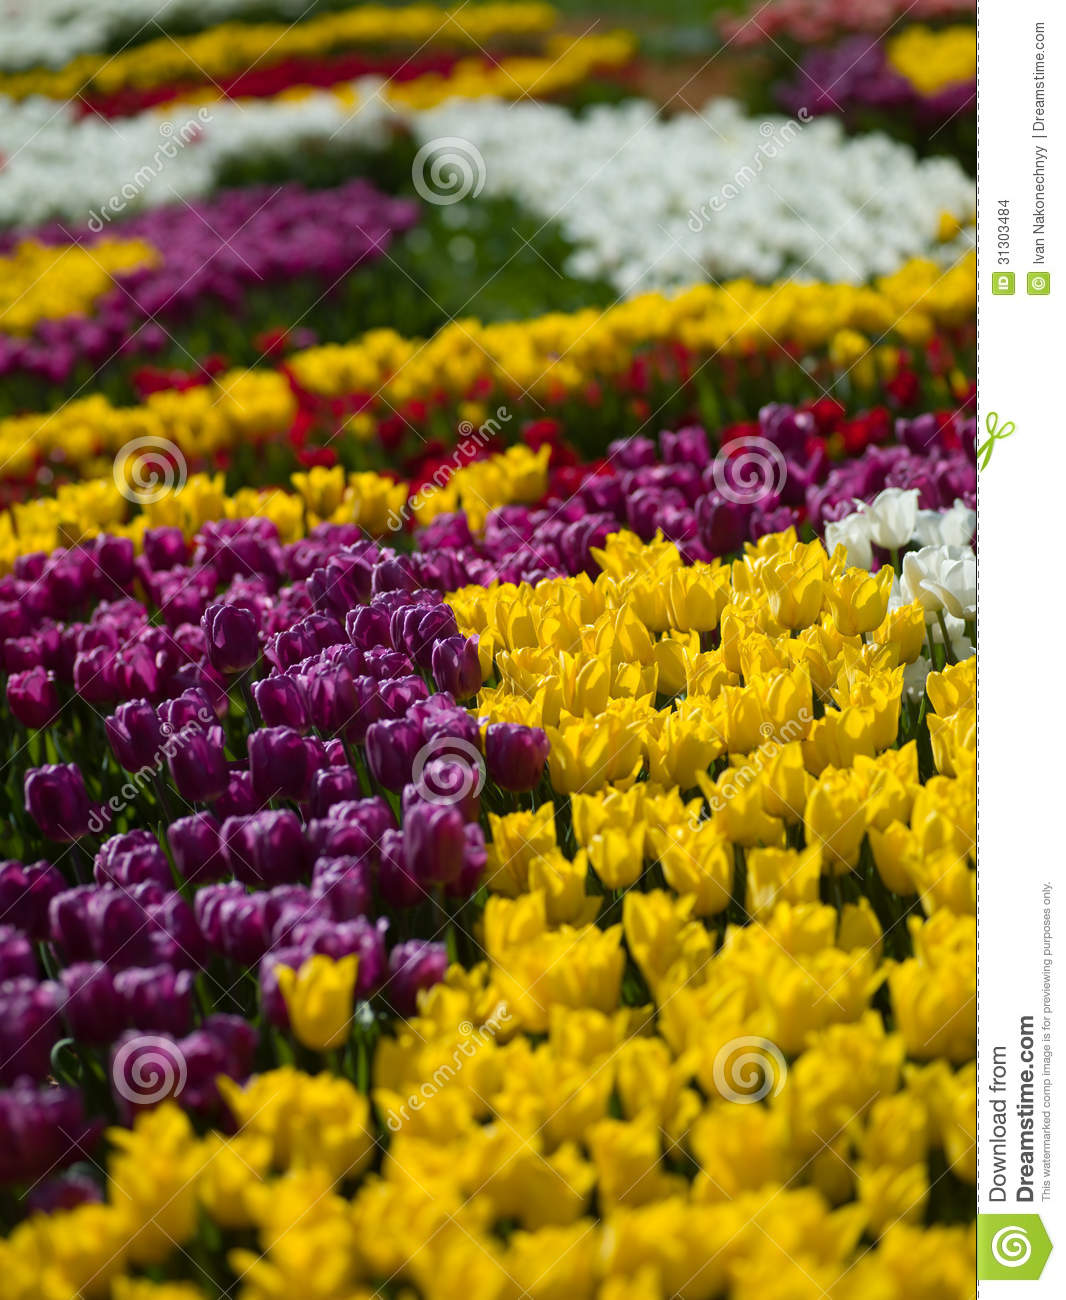 Flowers tulips stock images image 31303484 for What makes flowers different colors